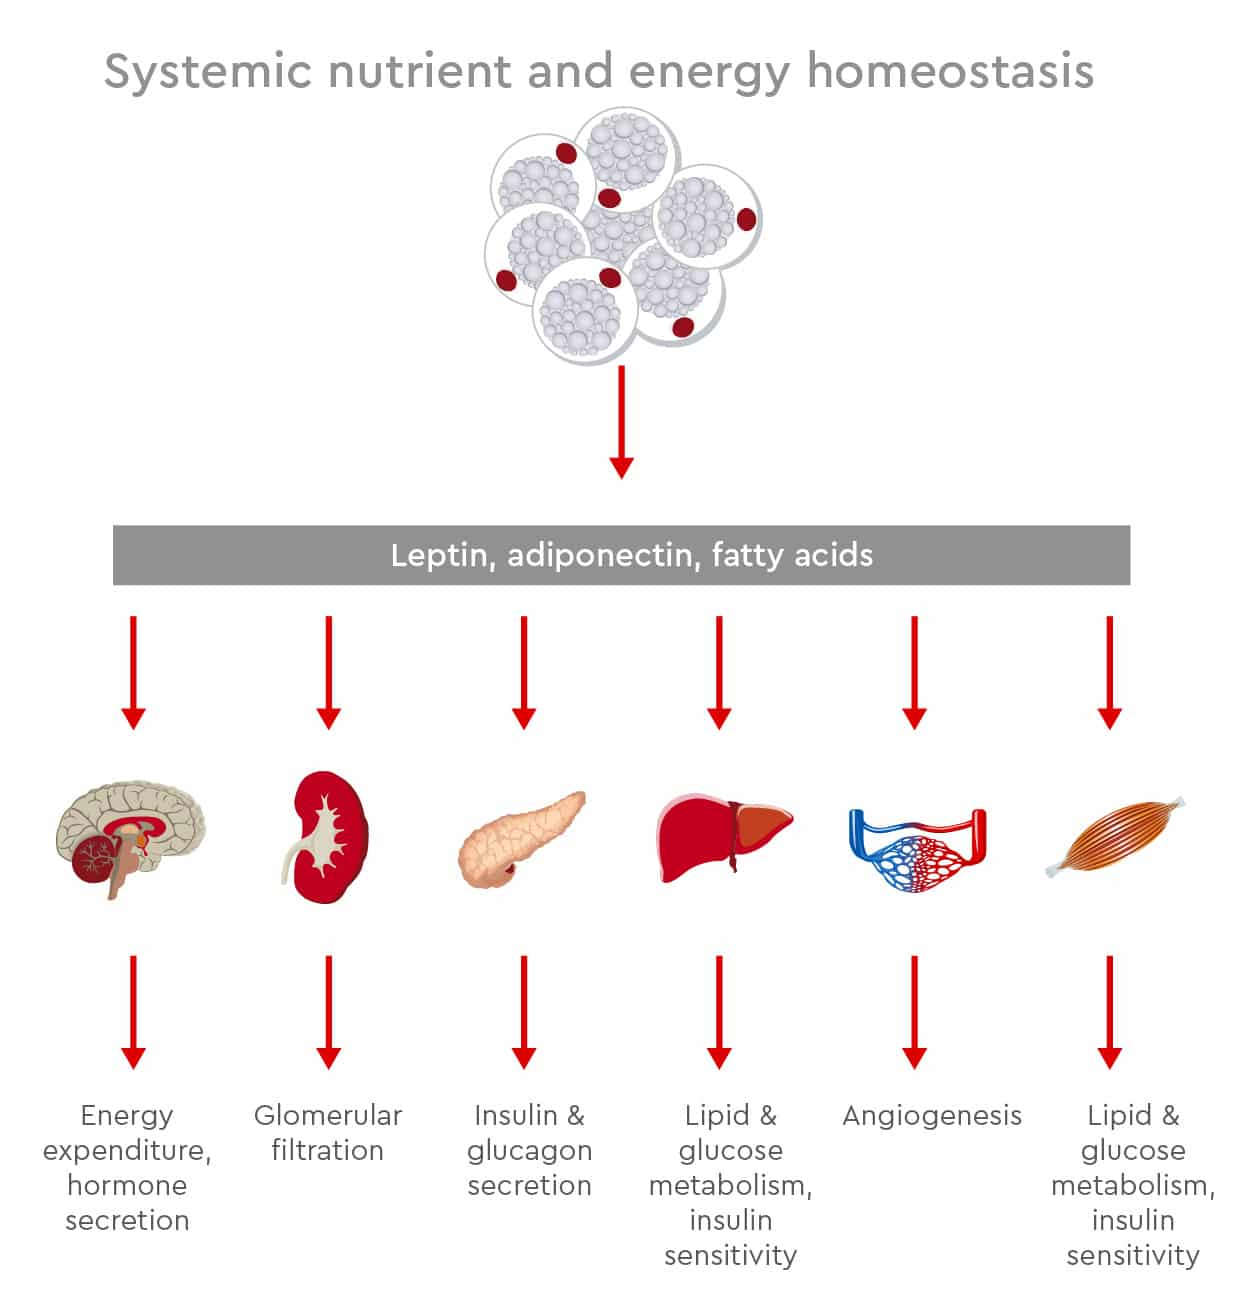 systemic nutrient and energy homeostasis